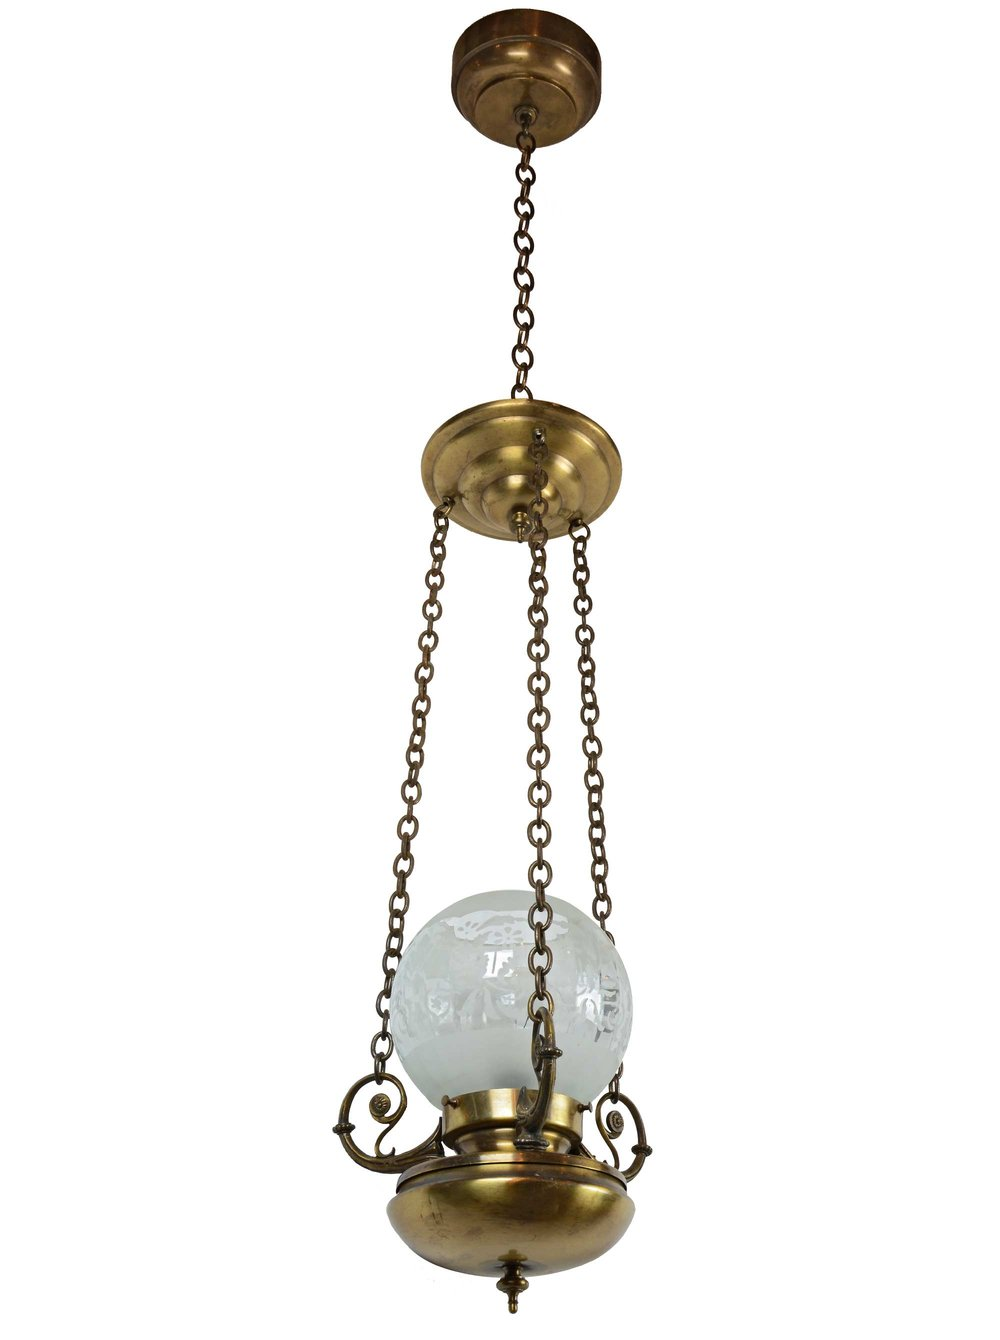 46814-brass-3-chain-neoclassical-pendant-angle.jpg